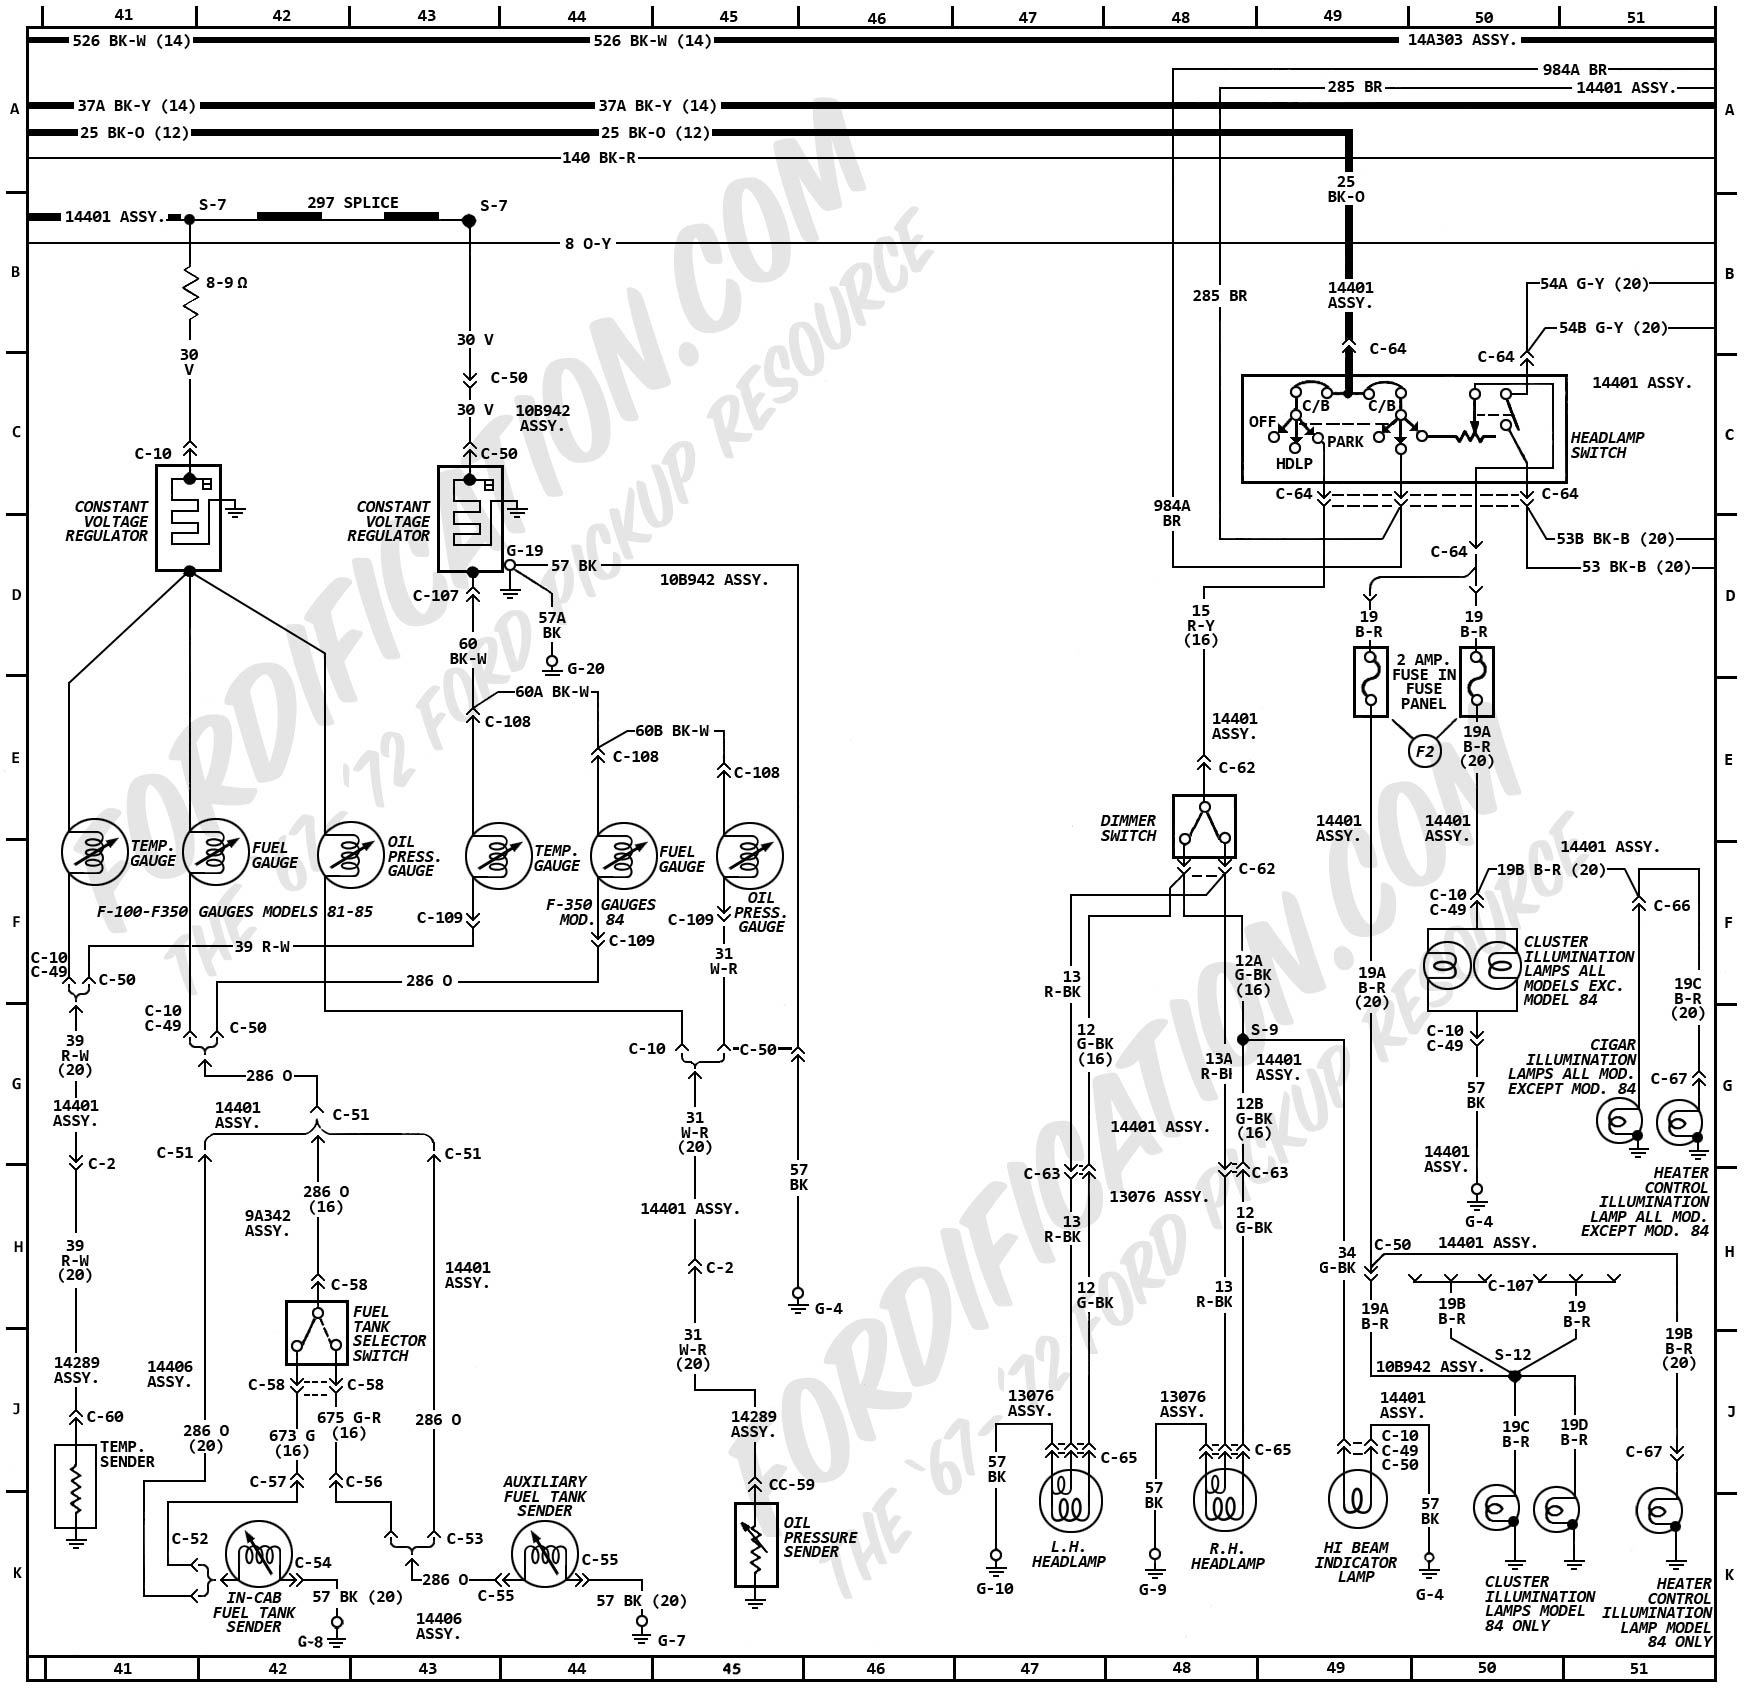 82 f100 wiring diagram 1972 ford truck wiring diagrams - fordification.com